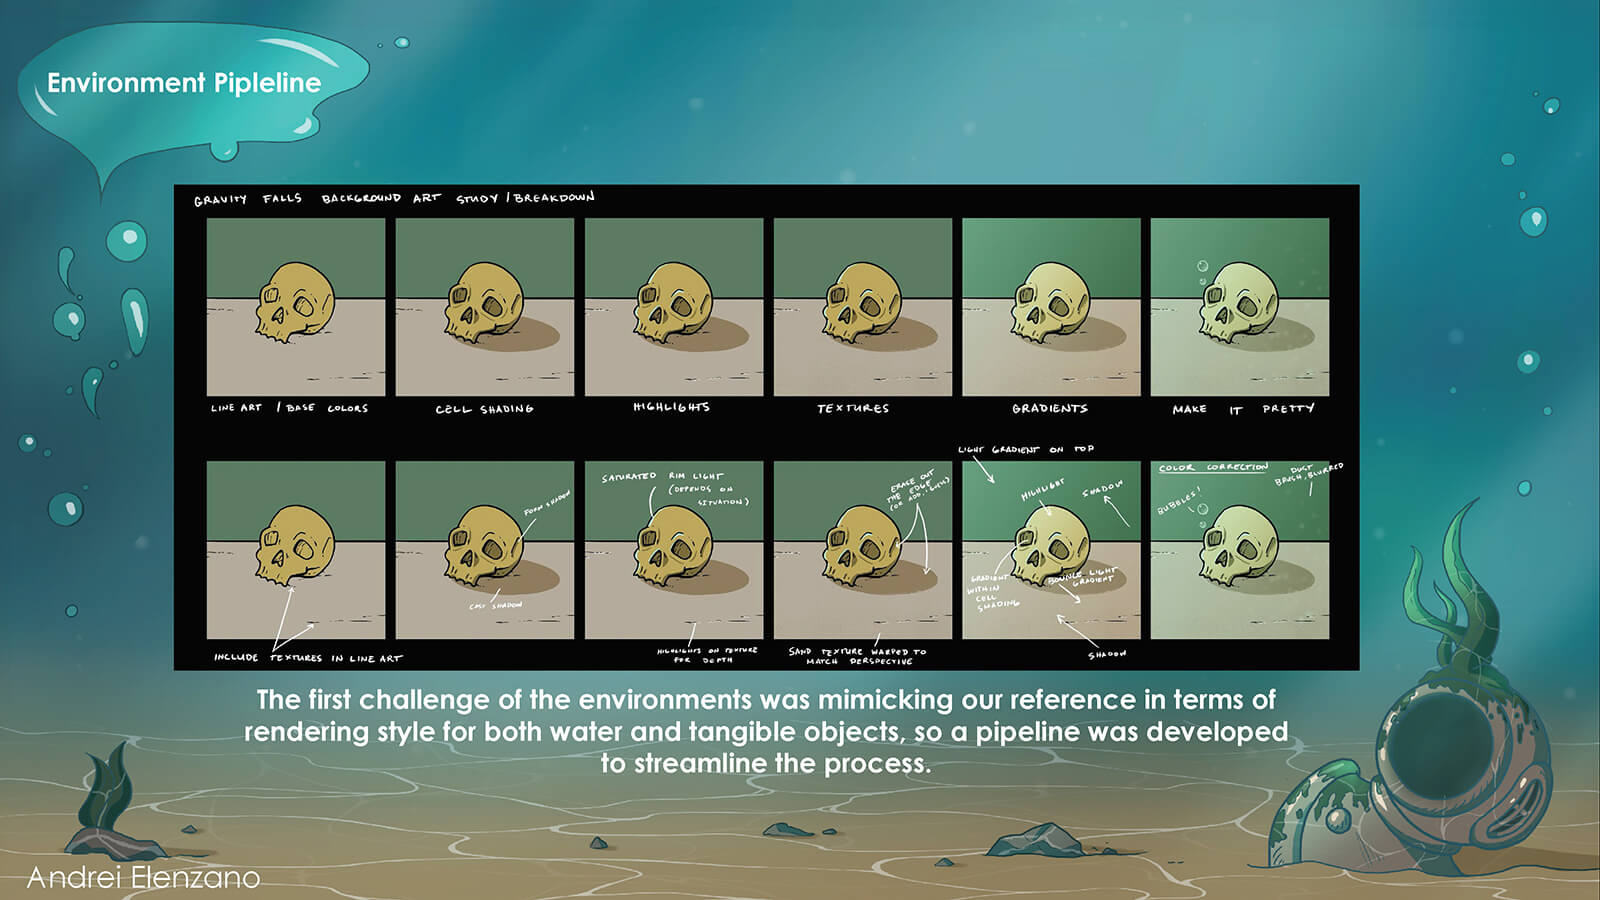 Design pipeline to animate in an underwater environment